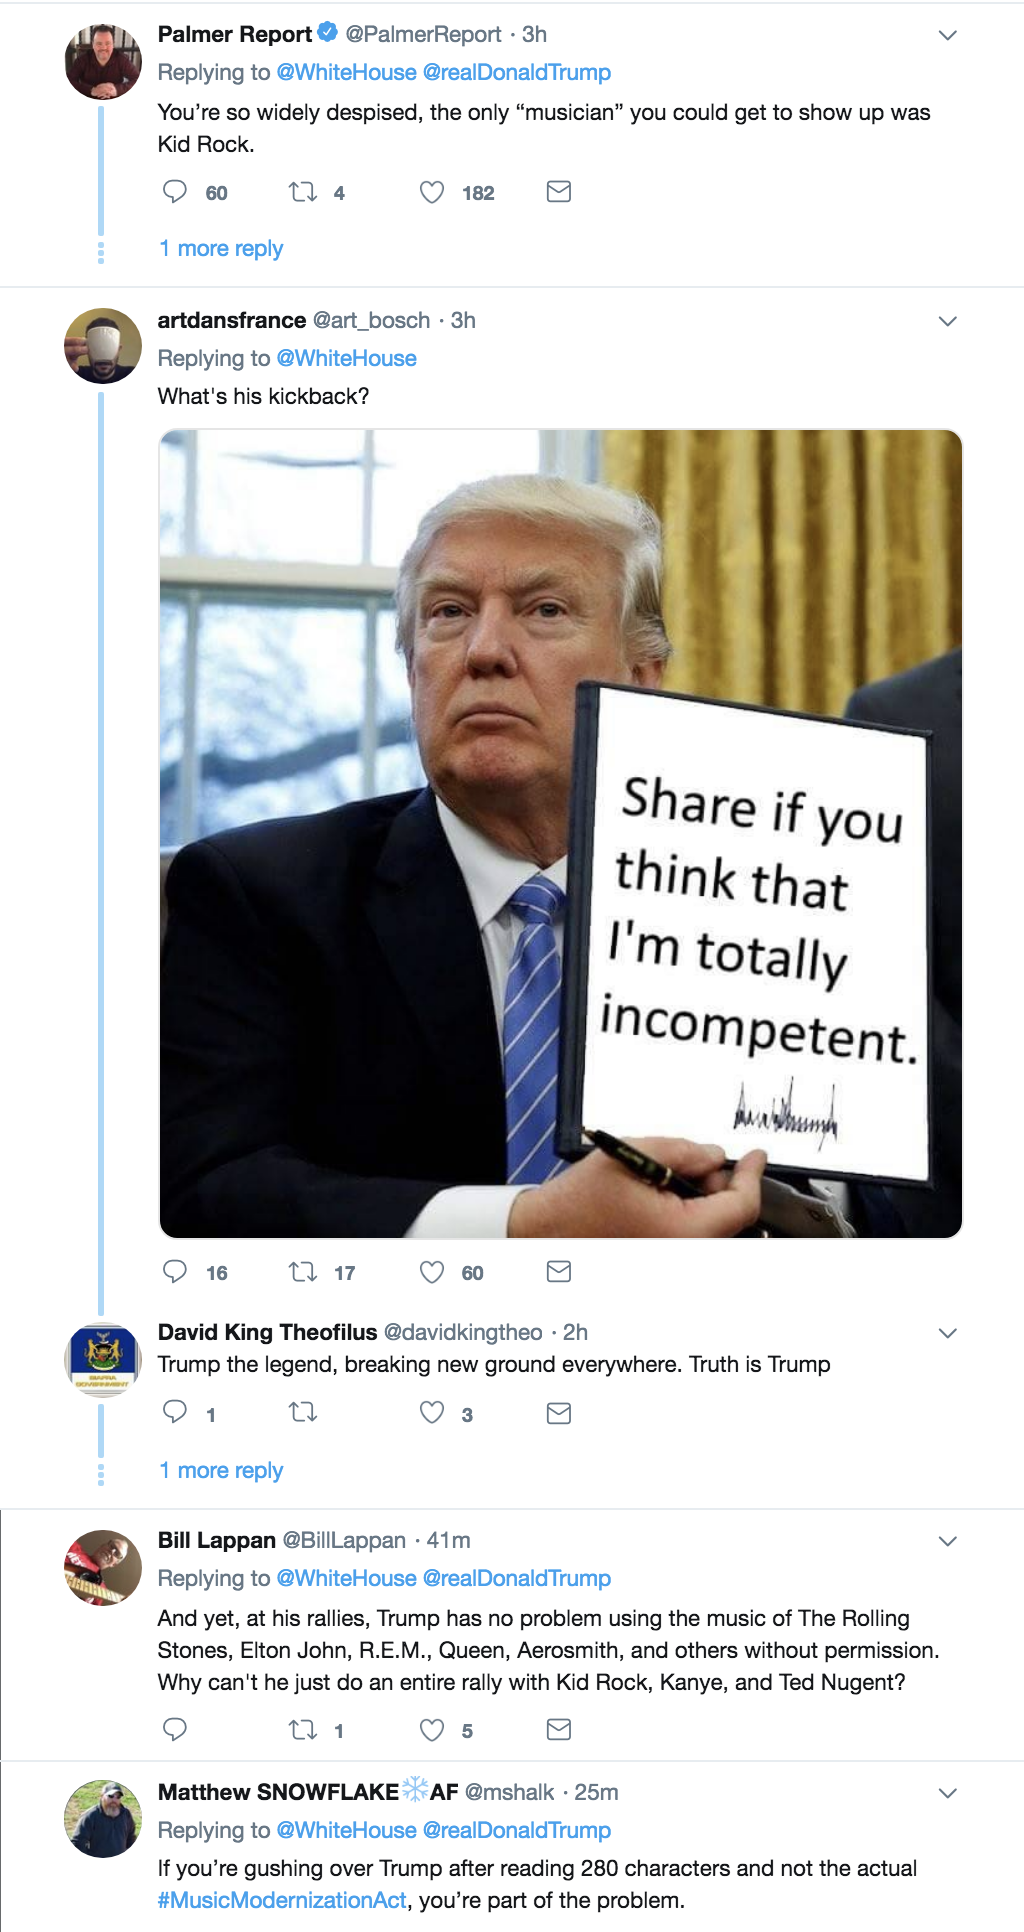 Screen-Shot-2018-10-11-at-3.16.58-PM Trump Tweets Video About Signing Law To Protect Musicians & Gets Eaten Alive Donald Trump Economy Hollywood Music Politics Television Top Stories Videos